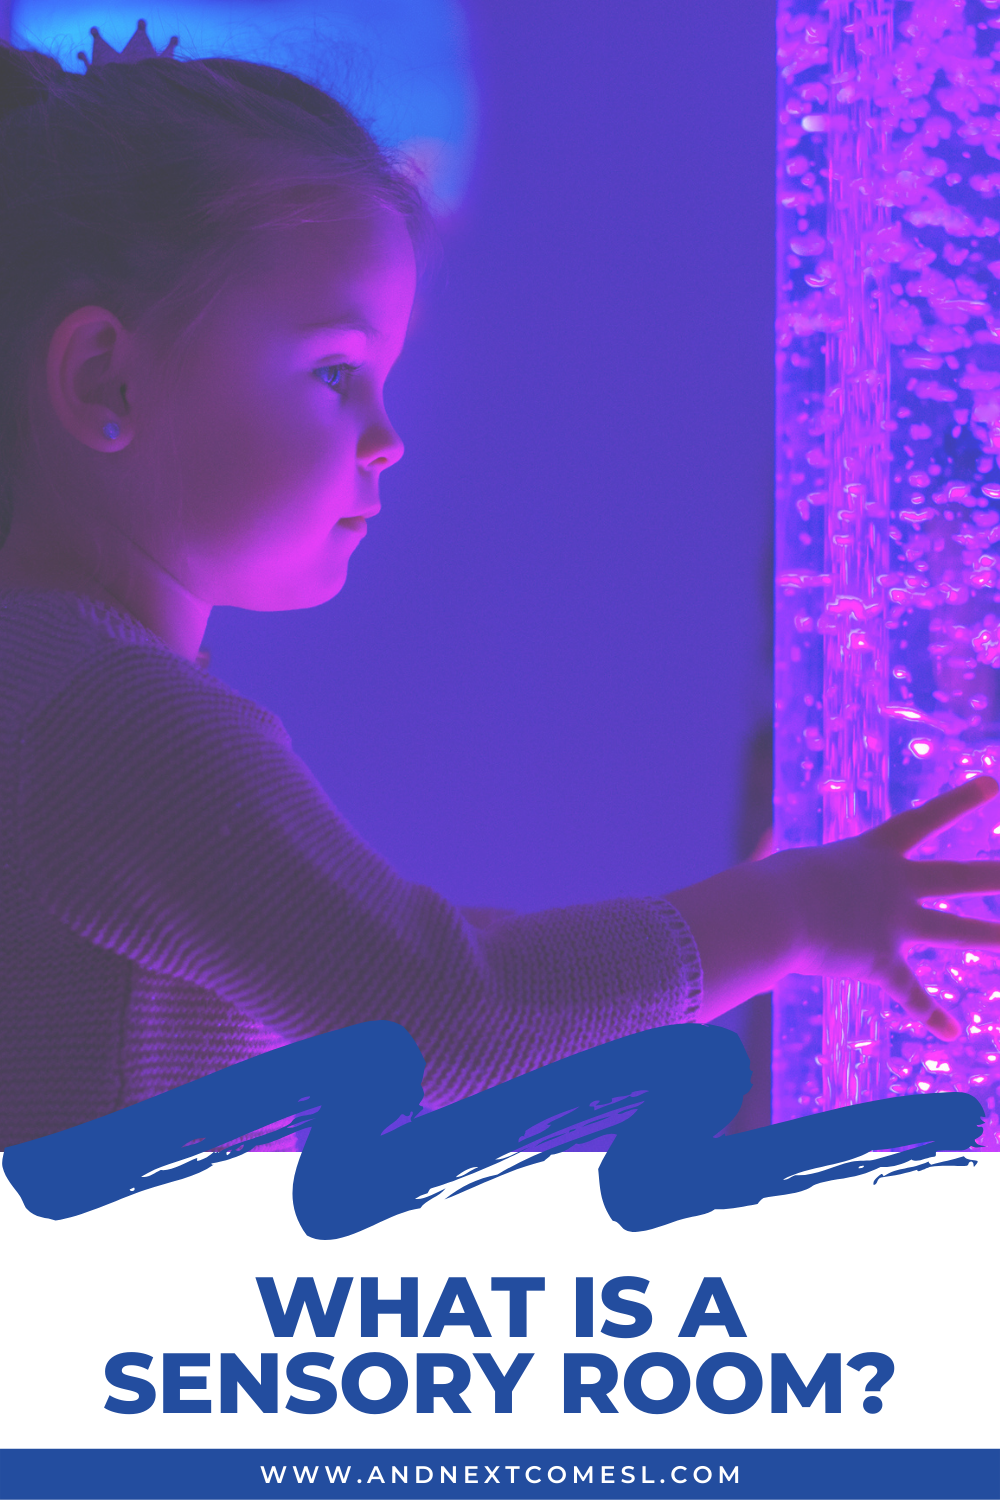 What is a sensory room? A look at what sensory rooms are, what they're used for, their history, and more!